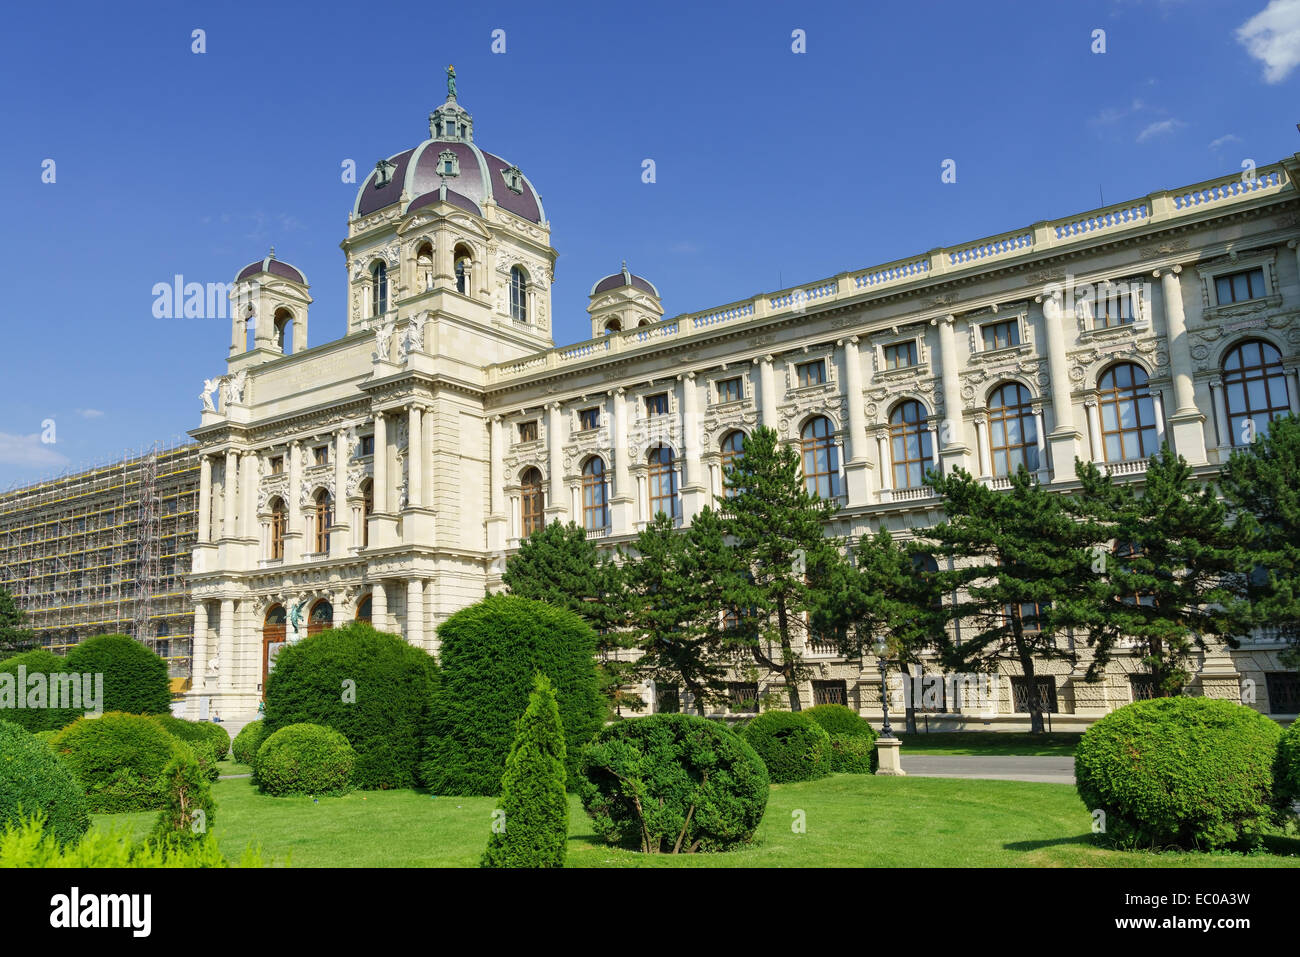 The Kunsthistorisches Museum (Art History Museum) and gardens in Maria-Theresien-Platz, Vienna, Austria. Stock Photo